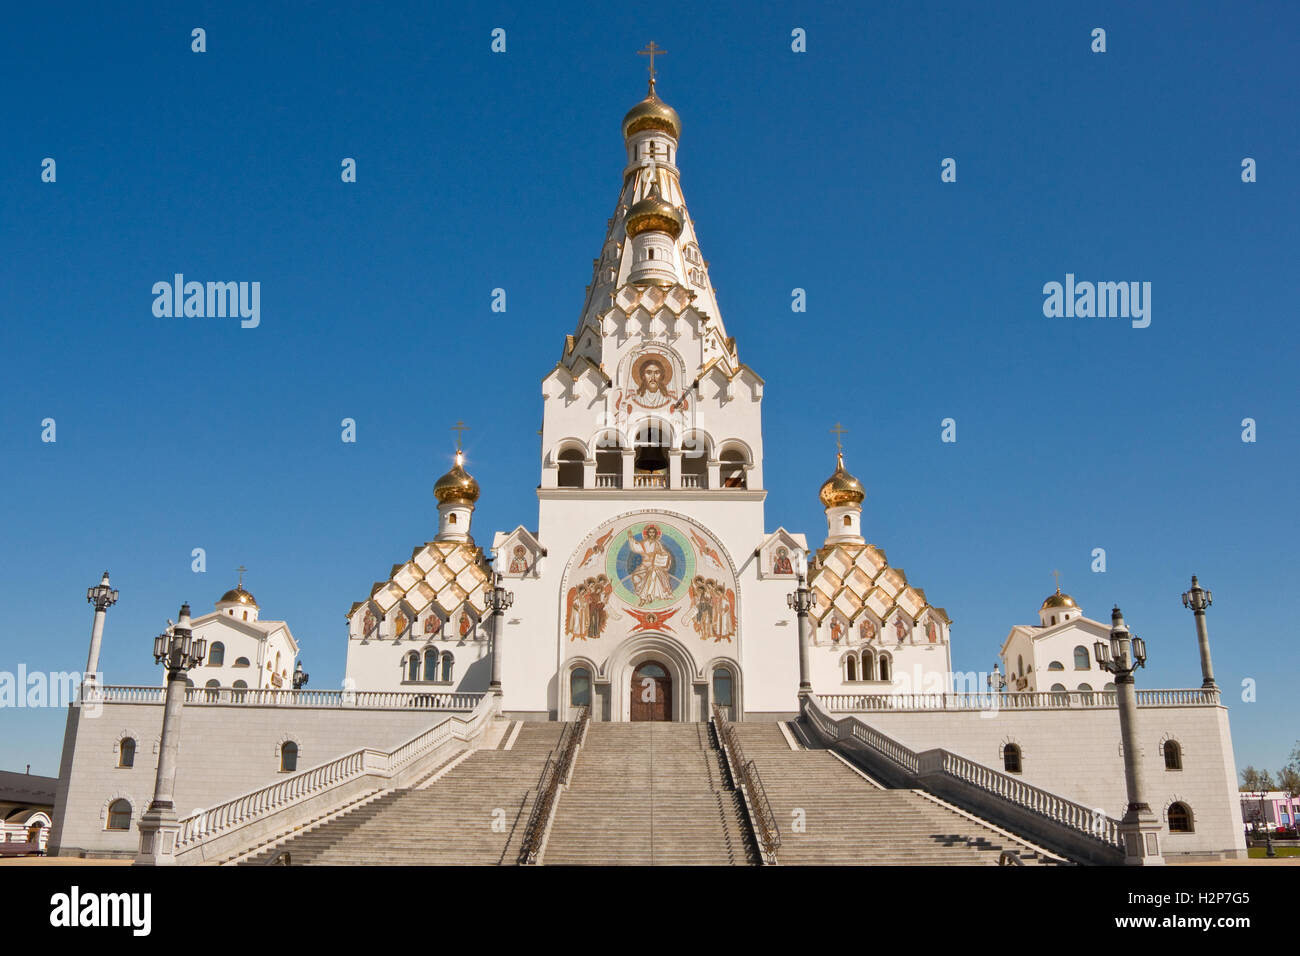 All saints church in Minsk, Belarus - Stock Image